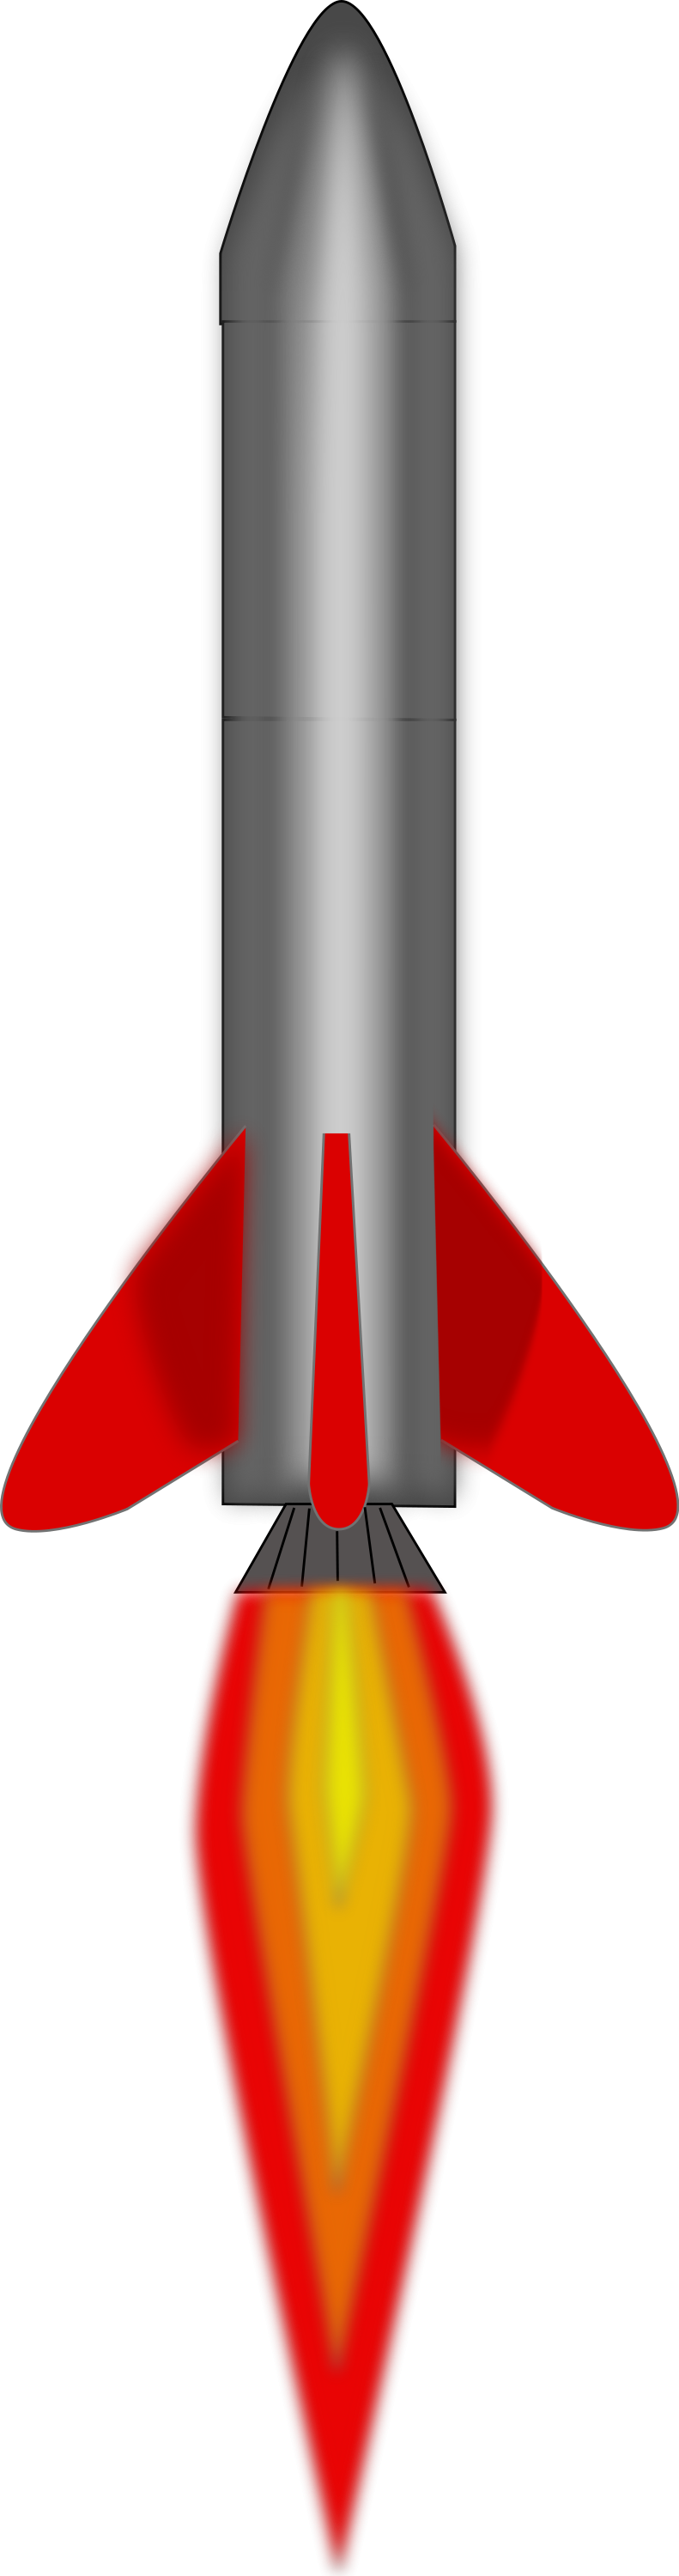 Rocket clipart transparent background #11